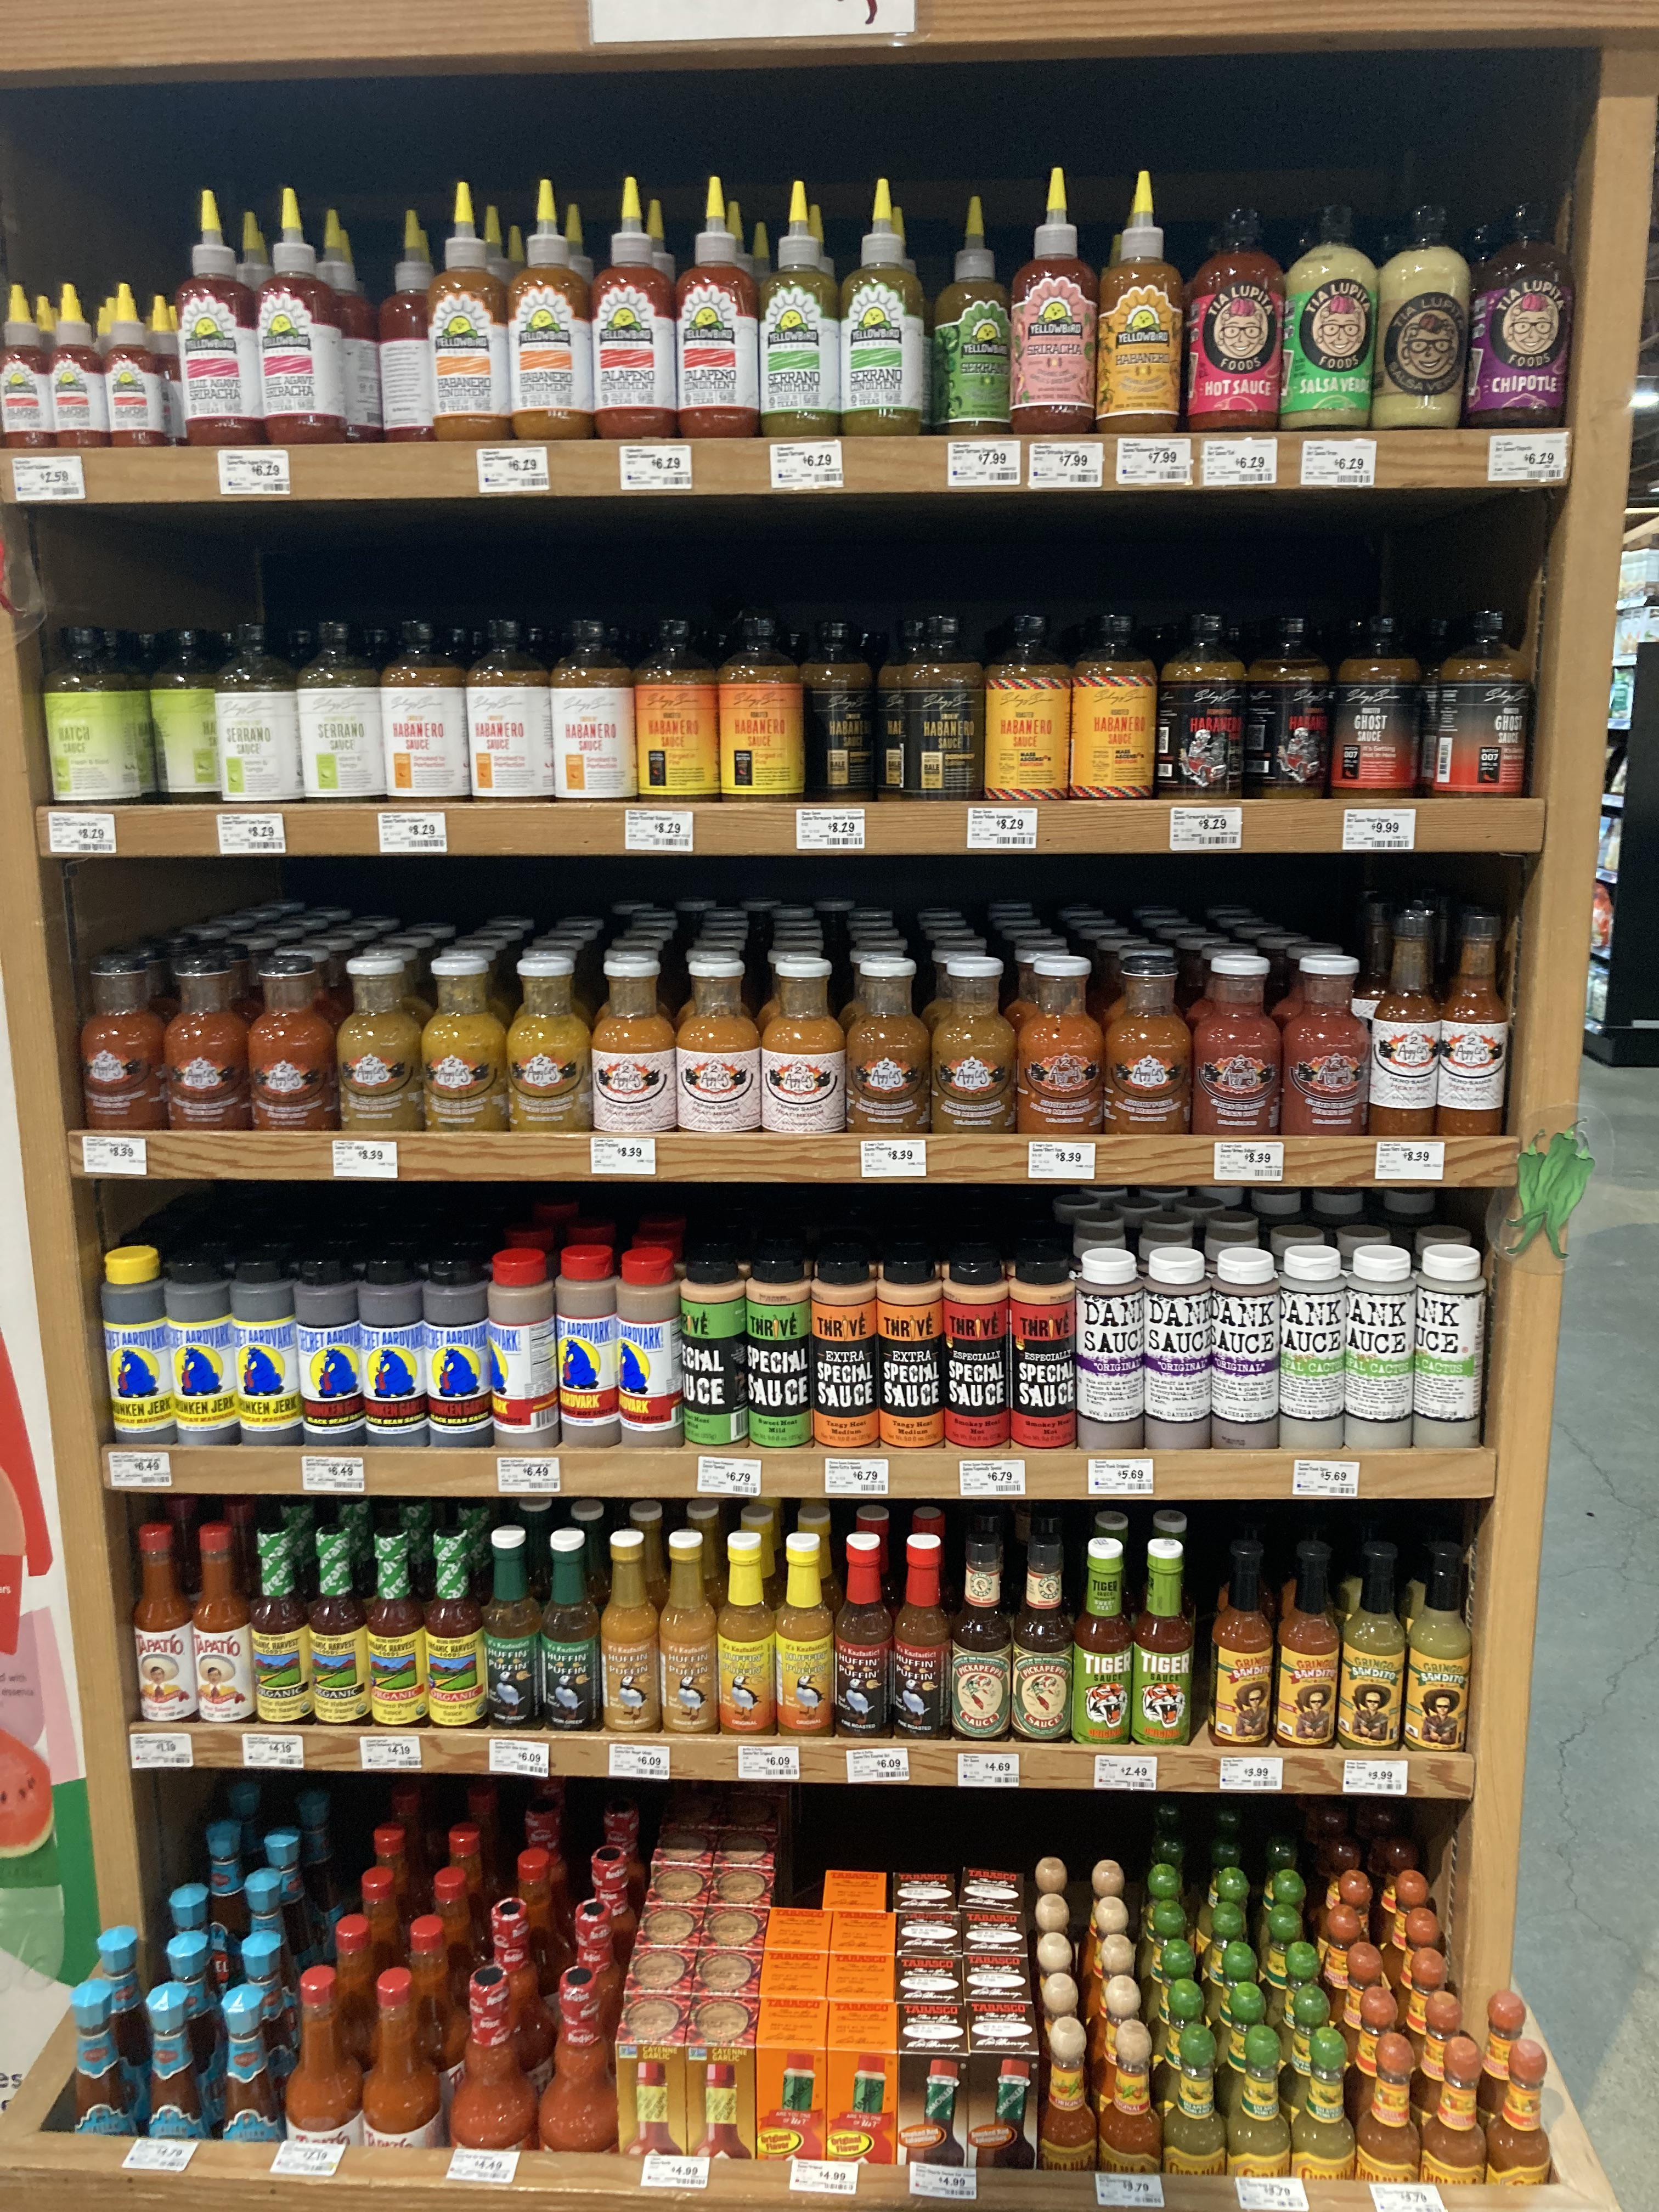 This hot sauce display at a grocery store